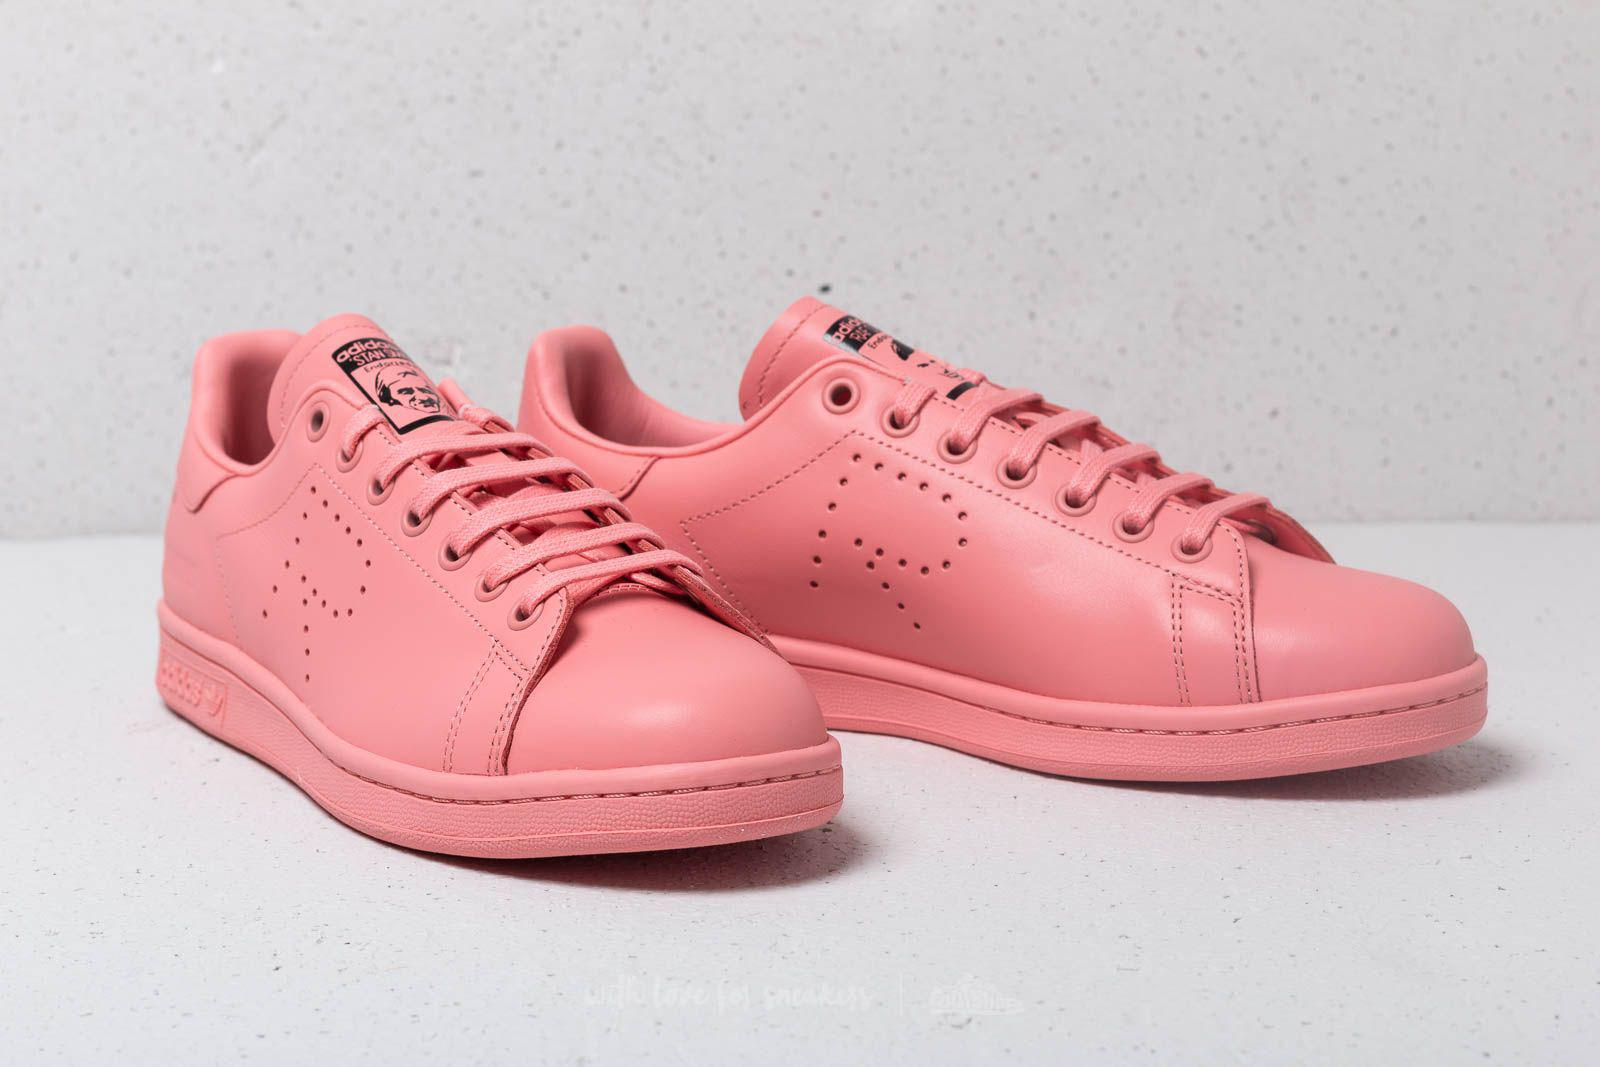 separation shoes bf7c0 40f2a Lyst - adidas By Raf Simons Adidas X Raf Simons Stan Smith T